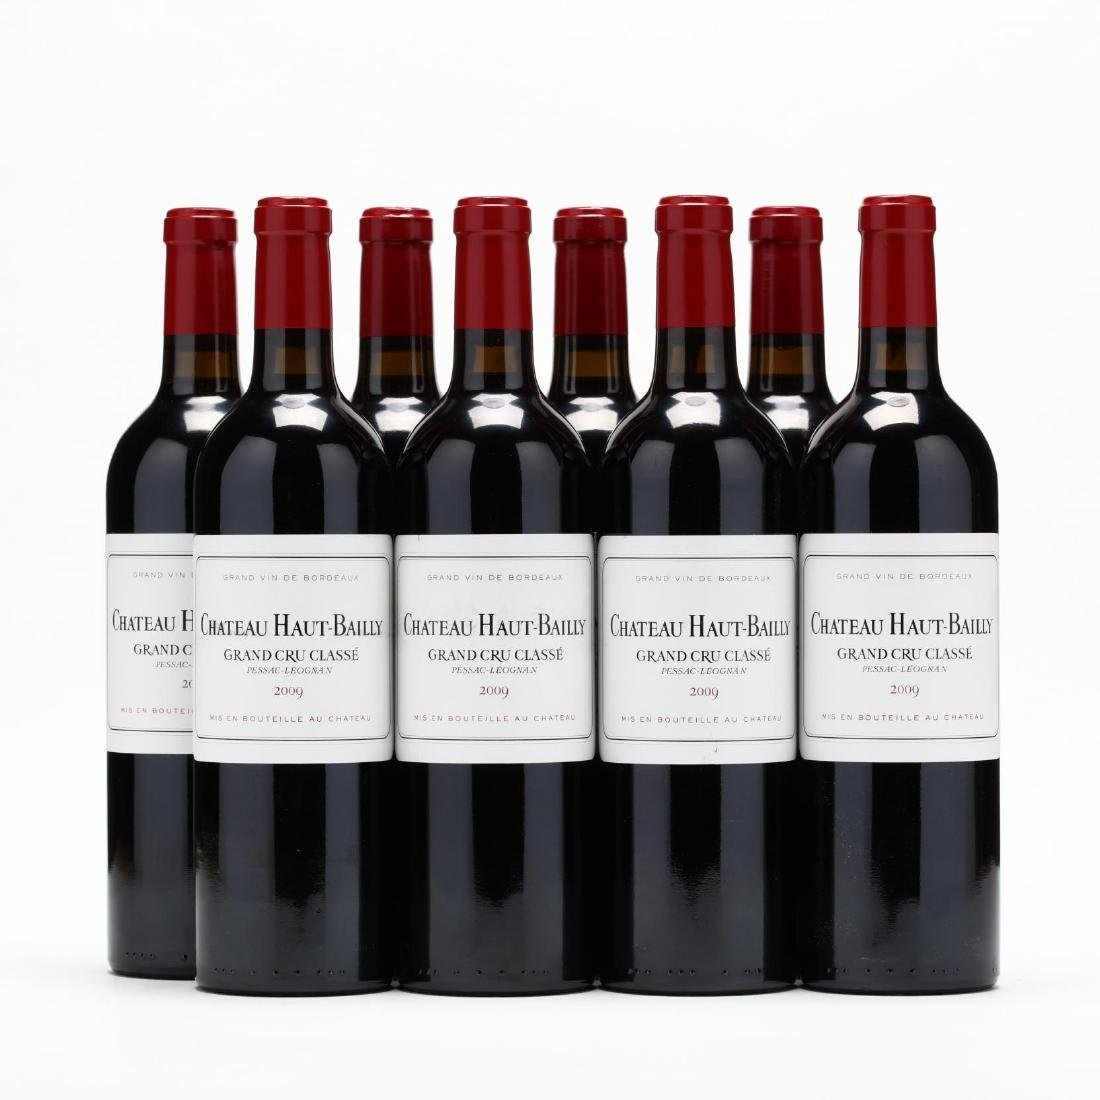 Chateau Haut-Bailly - Vintage 2009